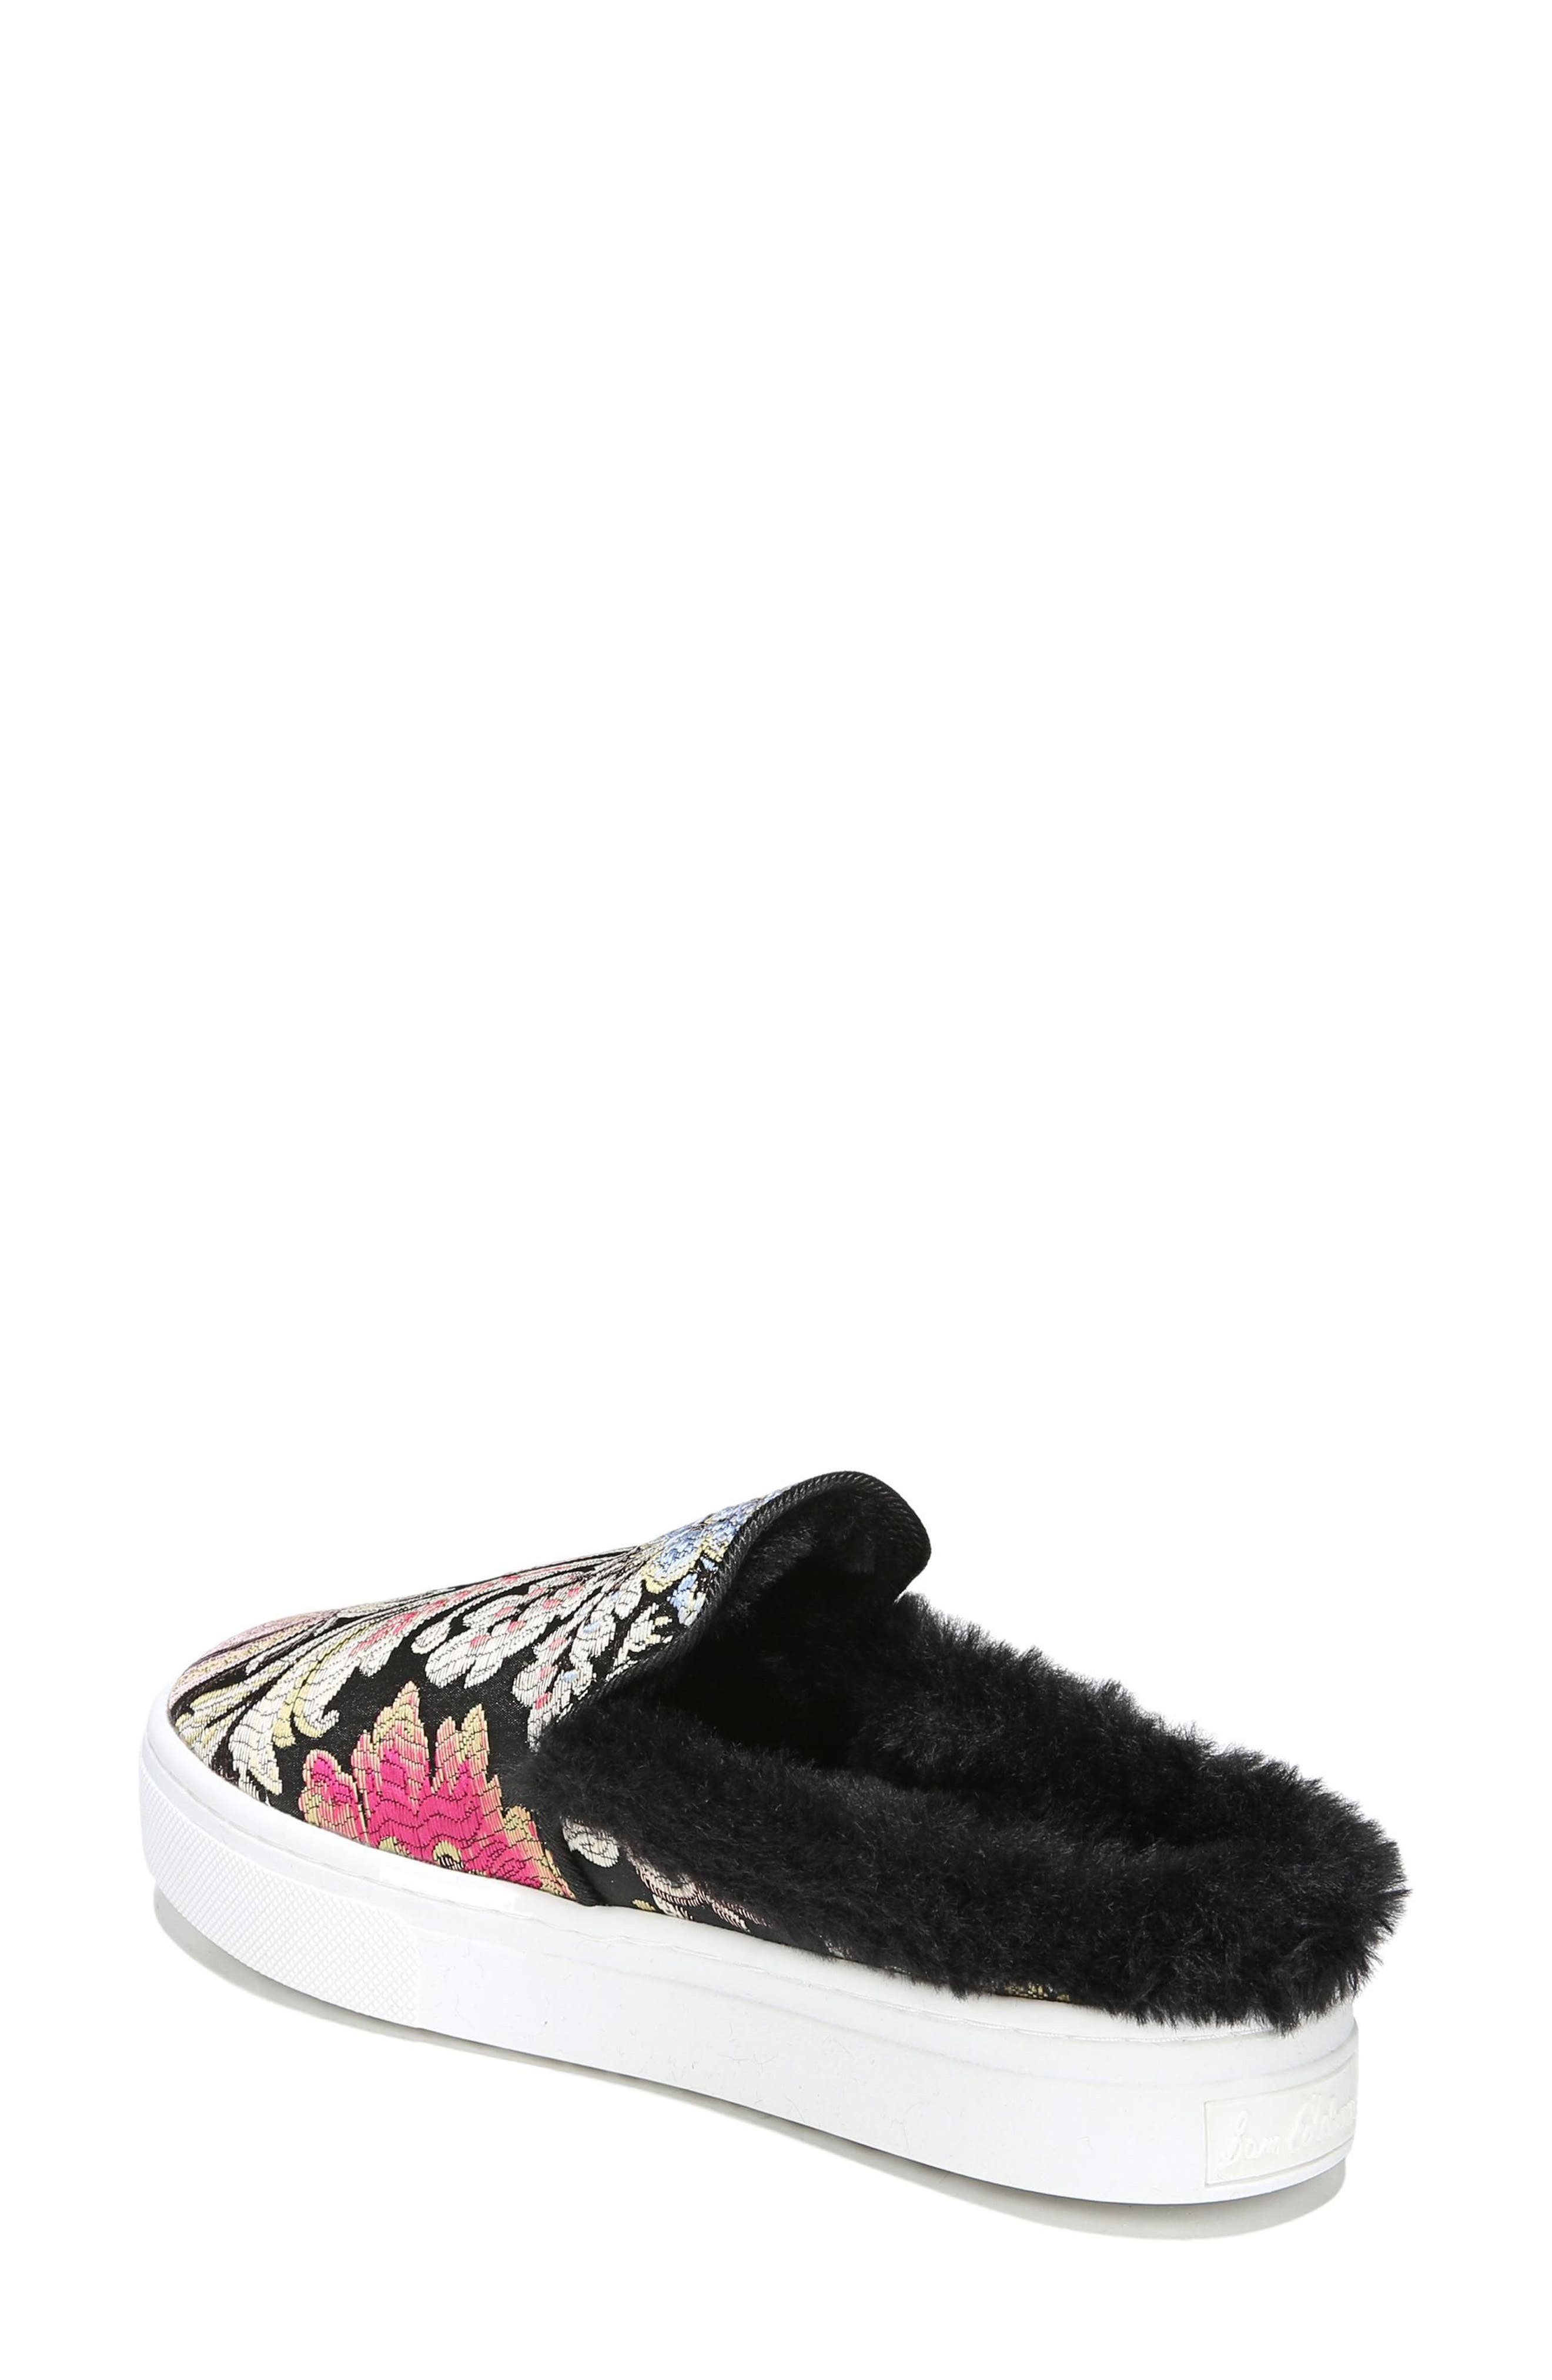 Levonne Platform Sneaker Mule,                             Alternate thumbnail 2, color,                             002